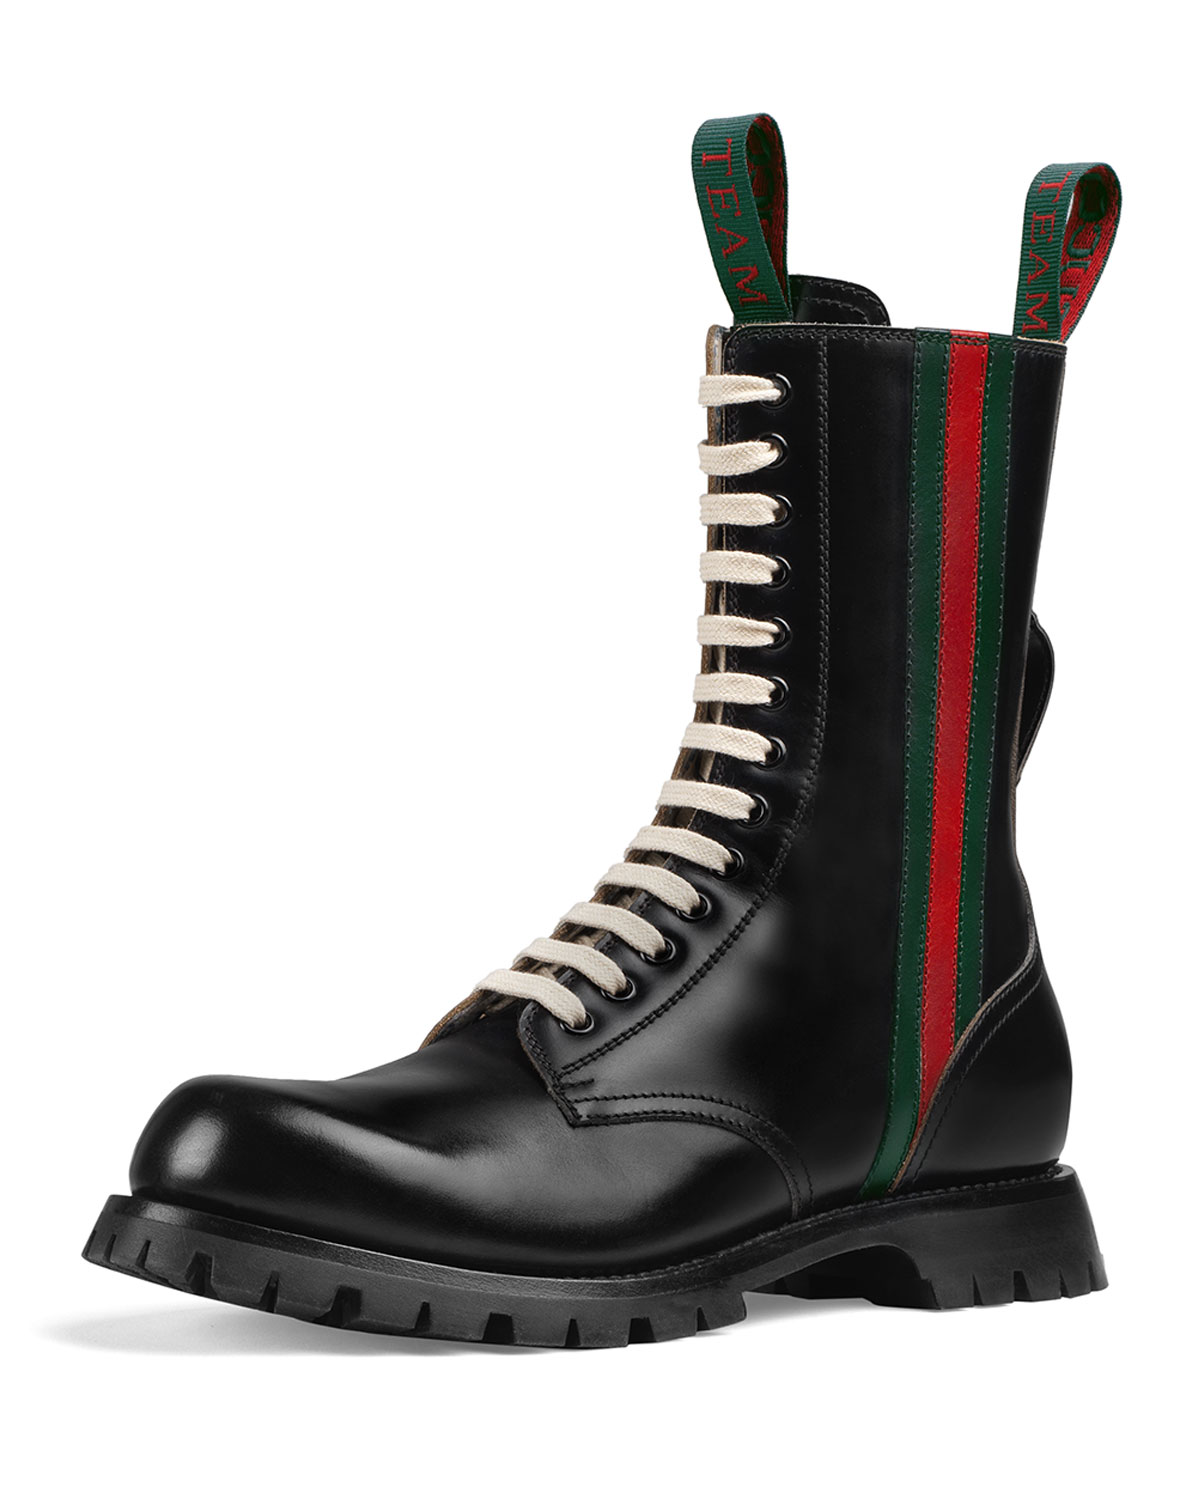 71a7d182feb13 Gucci Men s Black Leather Boots With Web